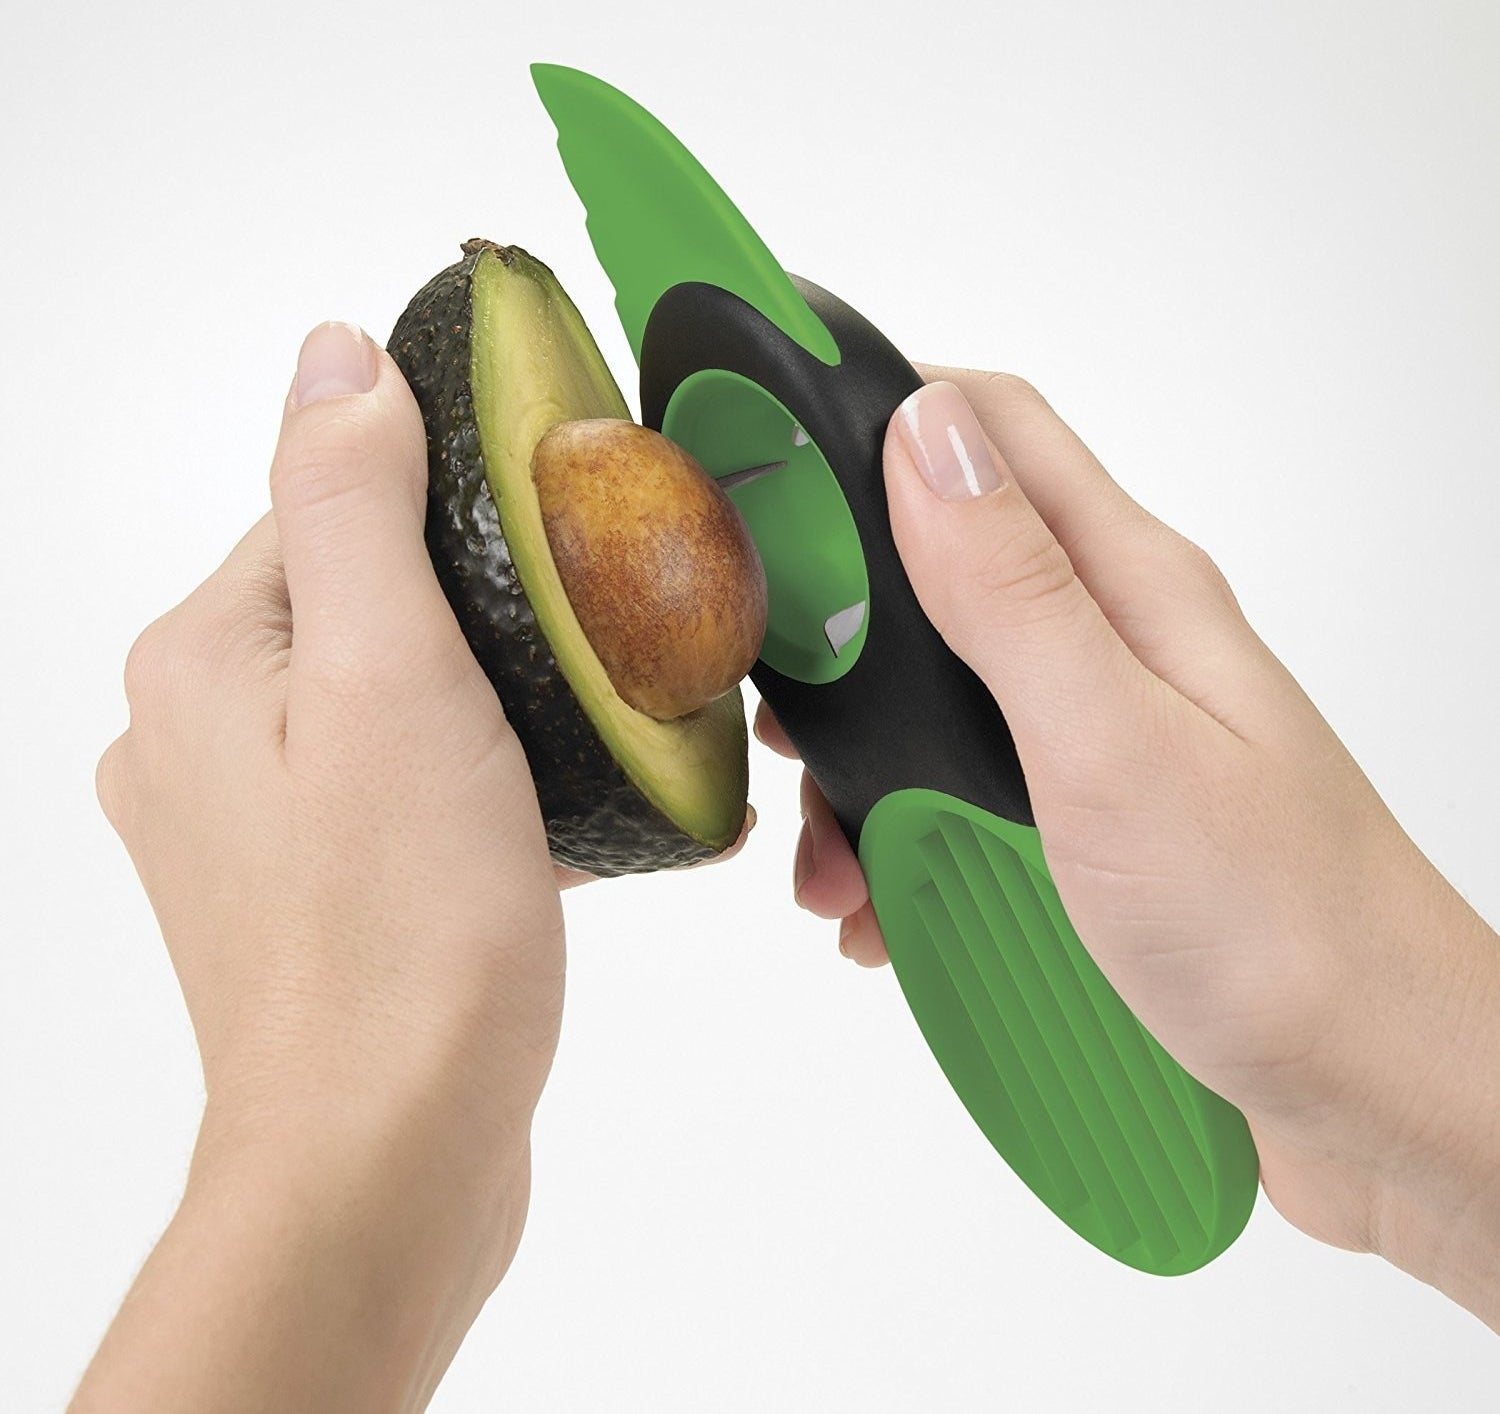 A tool with a knife on one end and a slicer on the other to scoop through the avocado. In the middle, there's a inverted hemisphere to grasp and remove avocado pits